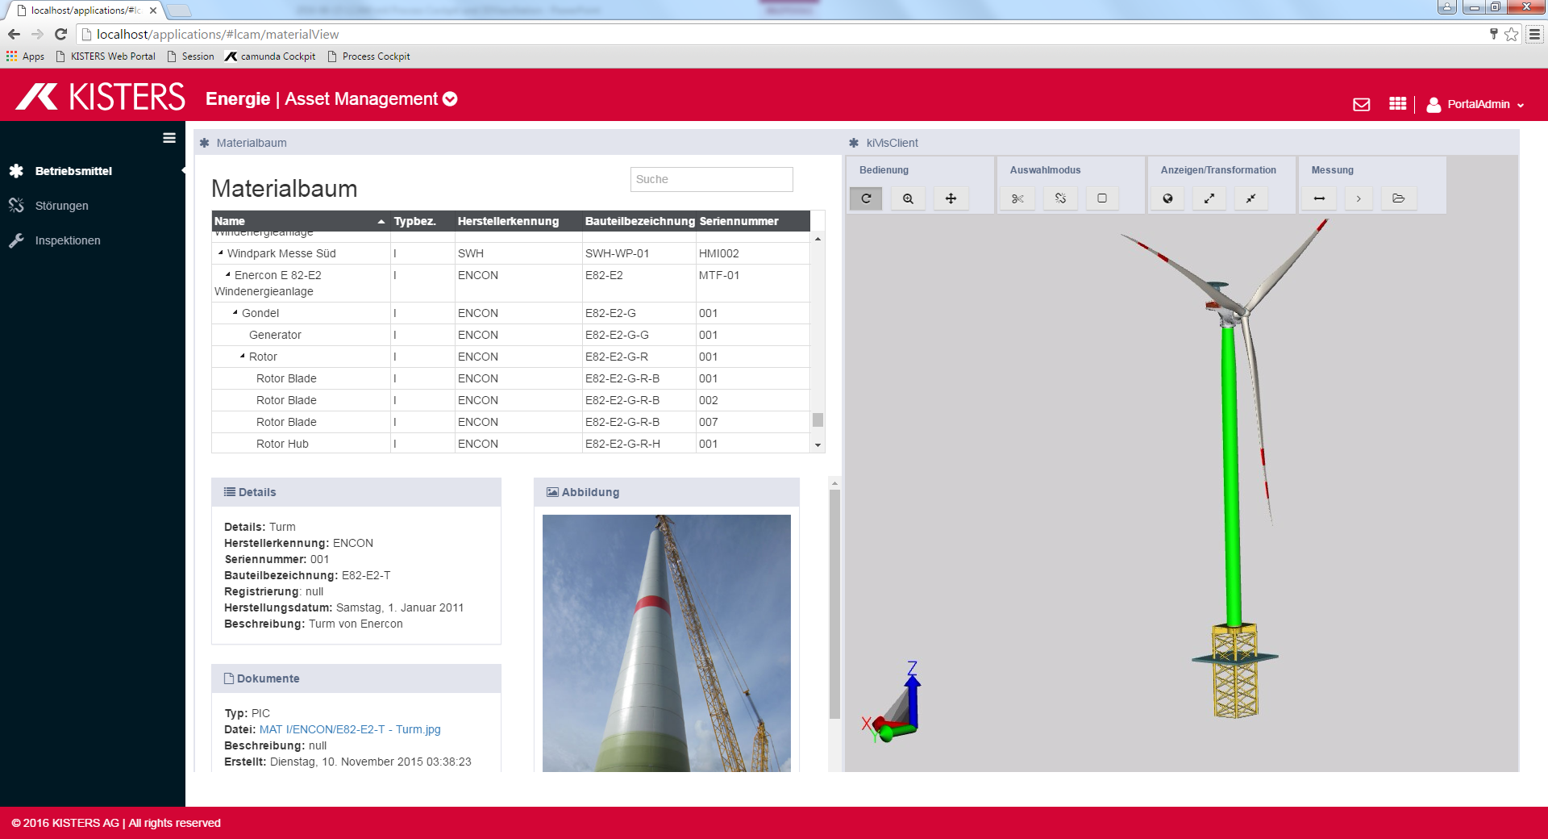 WebViewer in LifeCycleAssetMgmt (SLM, MRO) solution